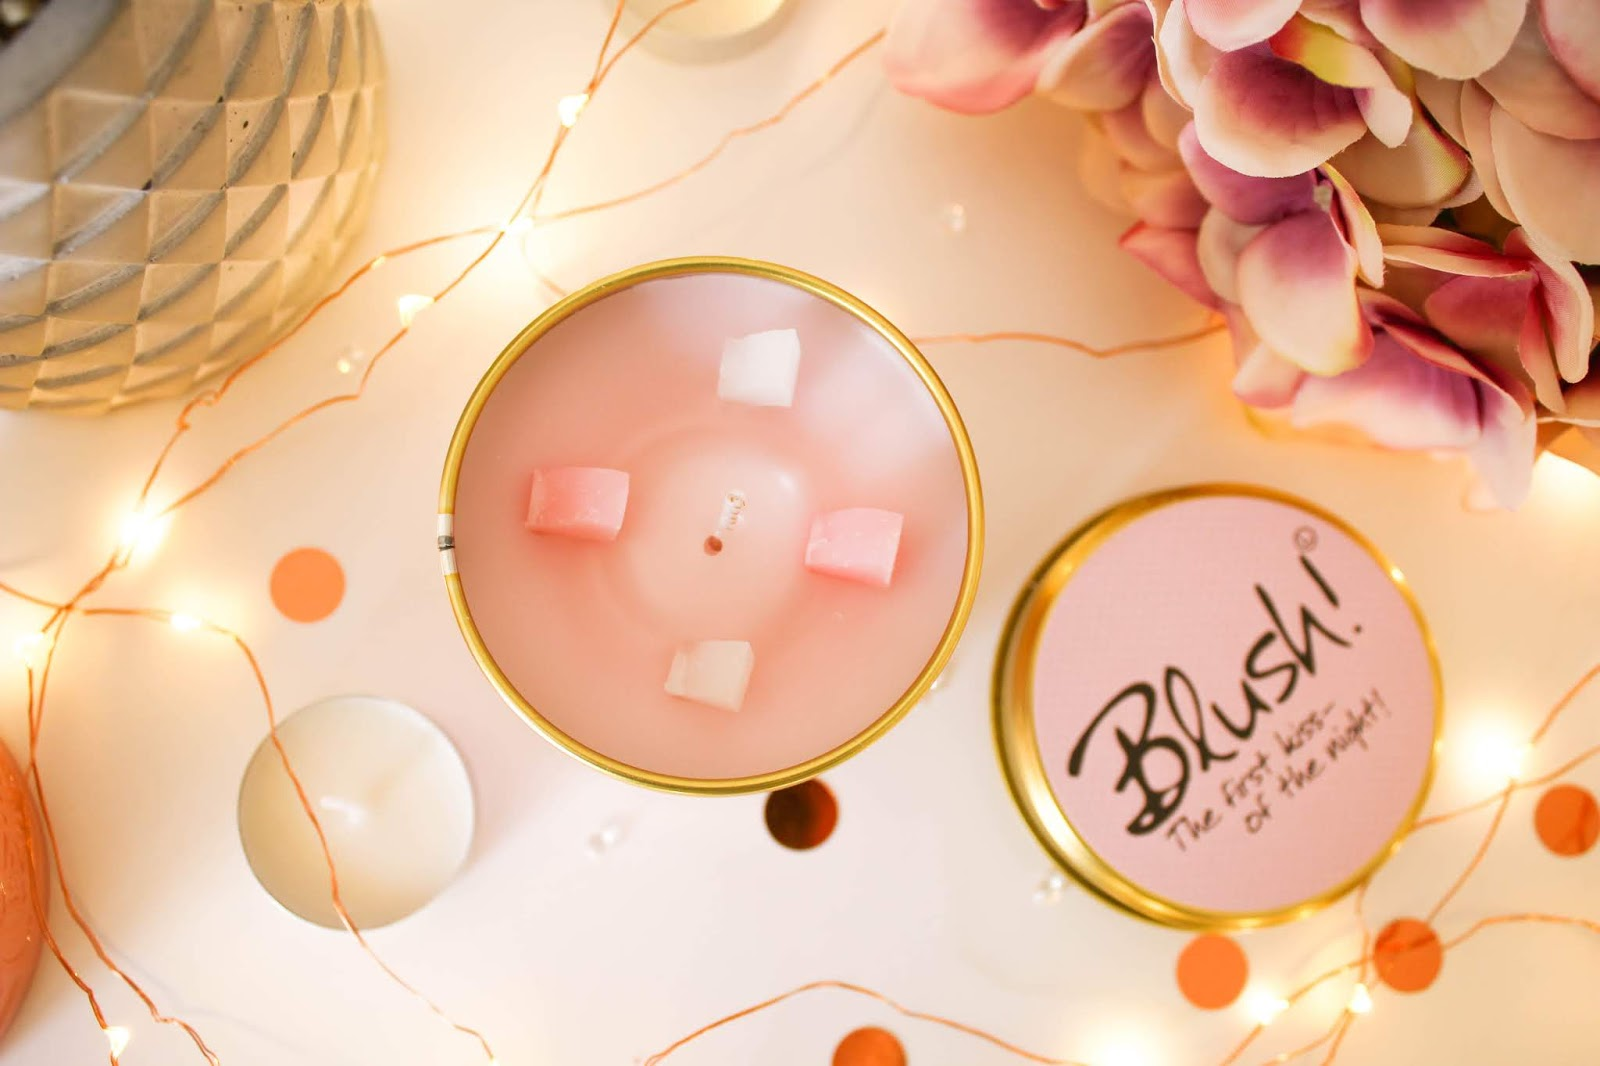 Lily-Flame Blush Scented Candle Tin - The First Kiss Of The Night!